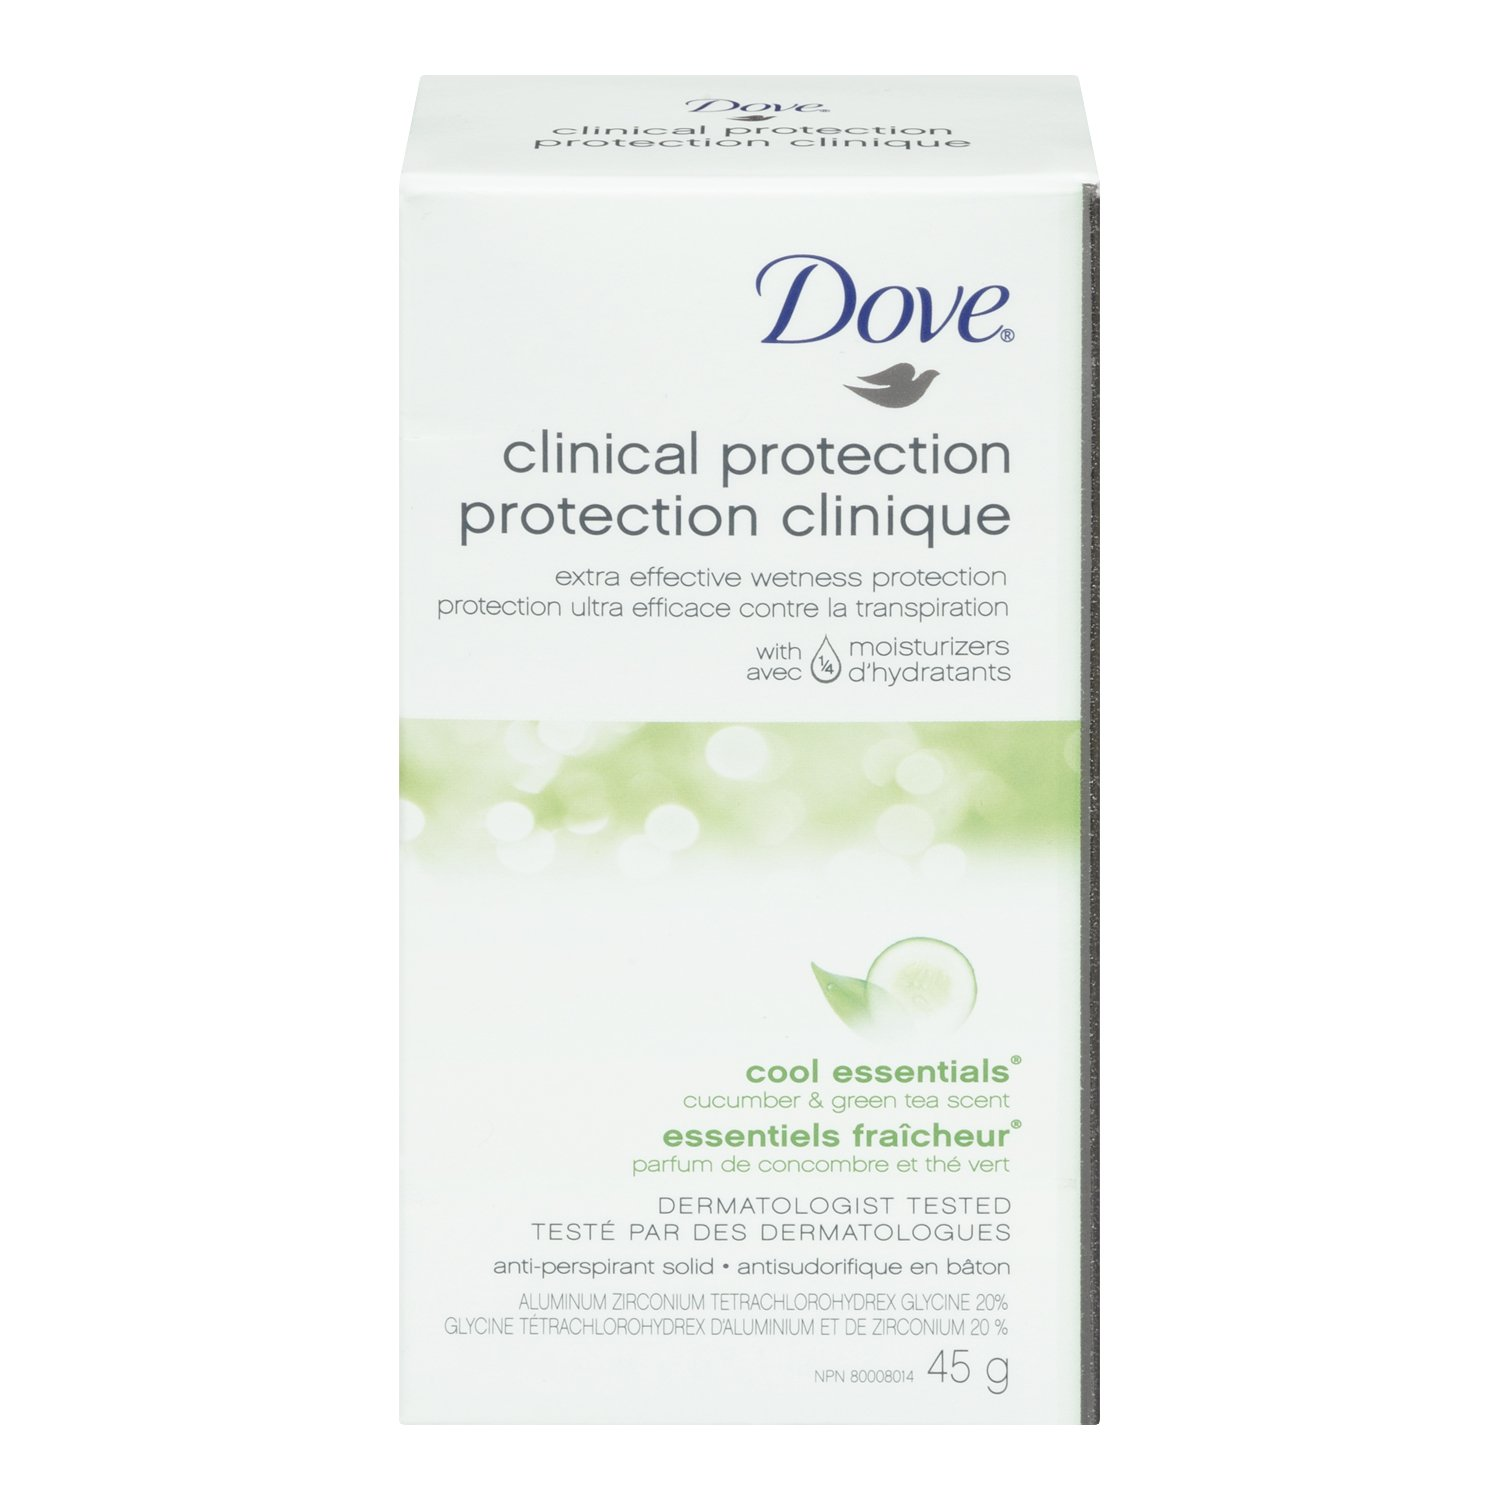 Dove Clinical Protection Cool Essentials Cucumber & Green Tea Scent Anti-Perspirant Solid 45g